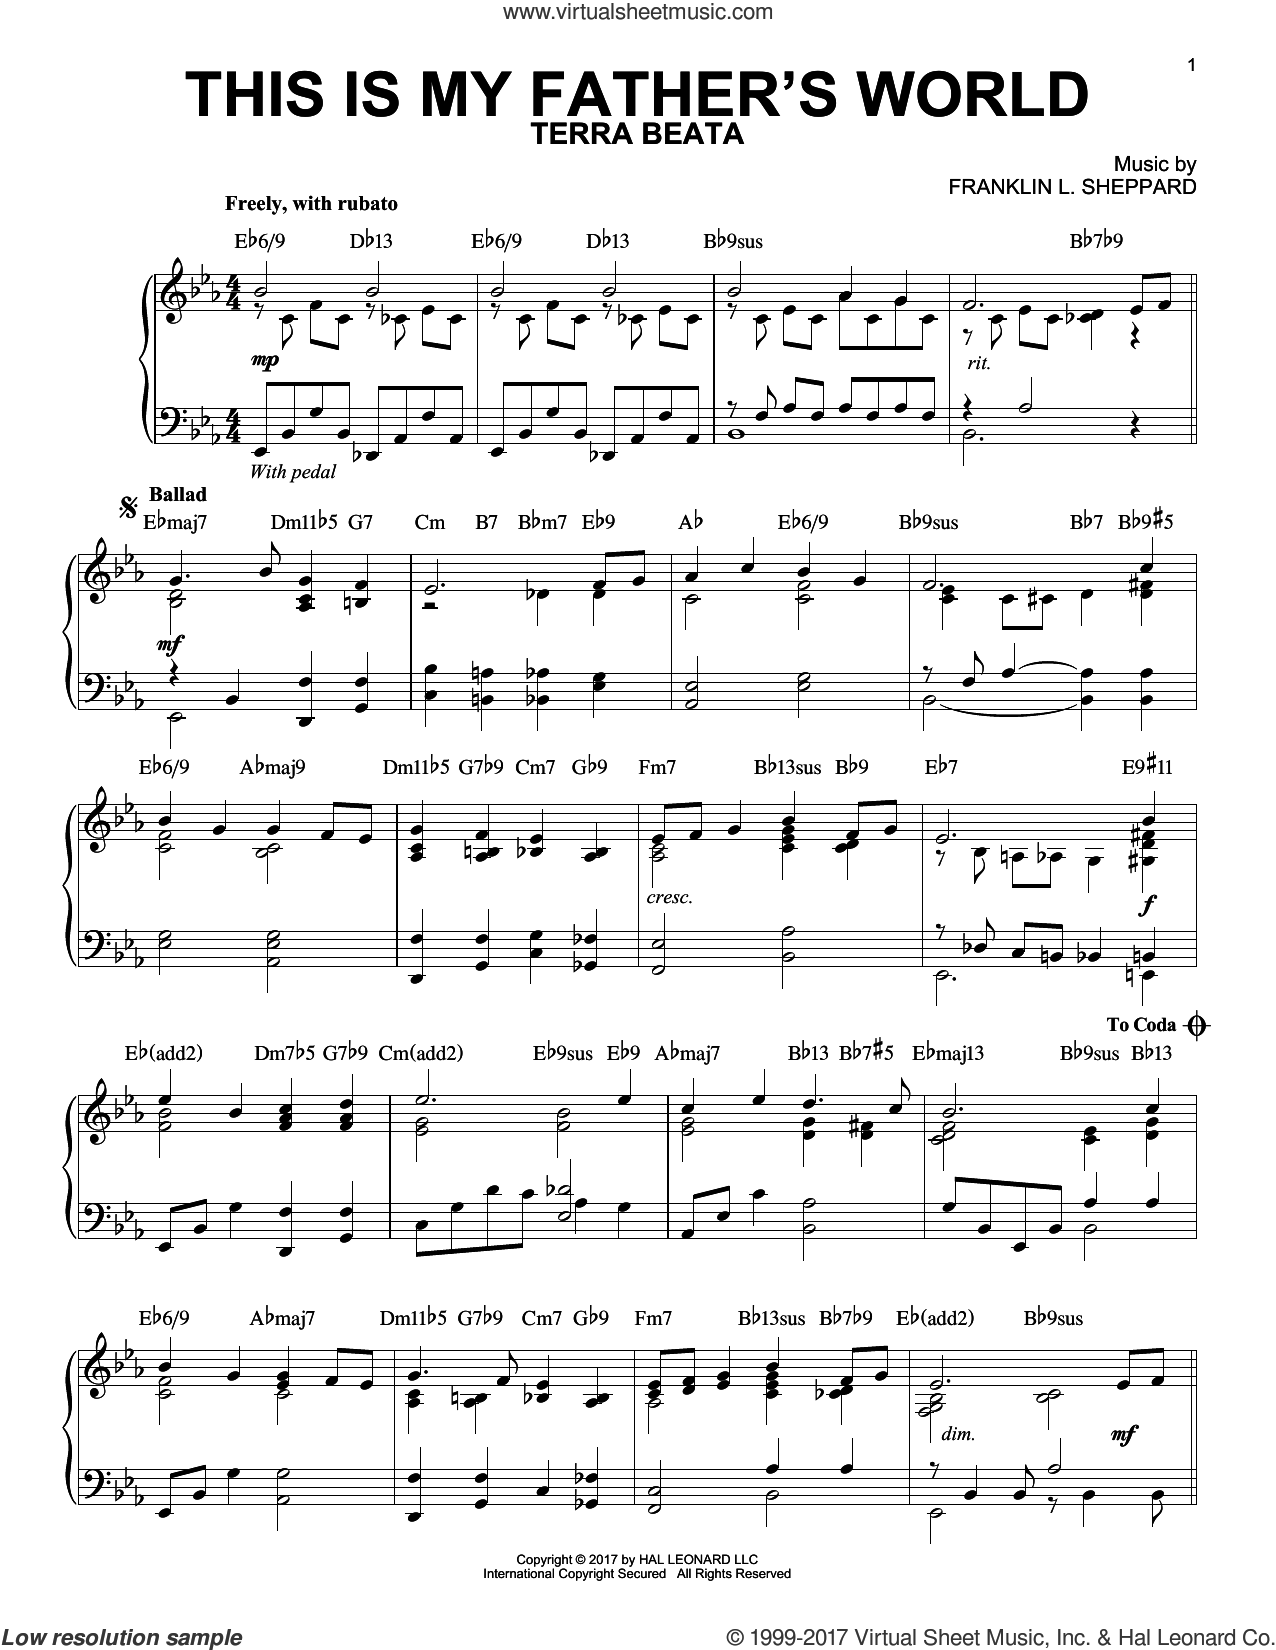 This Is My Father's World [Jazz version] (arr. Phillip Keveren) sheet music for piano solo by Franklin L. Sheppard and Maltbie D. Babcock, intermediate skill level